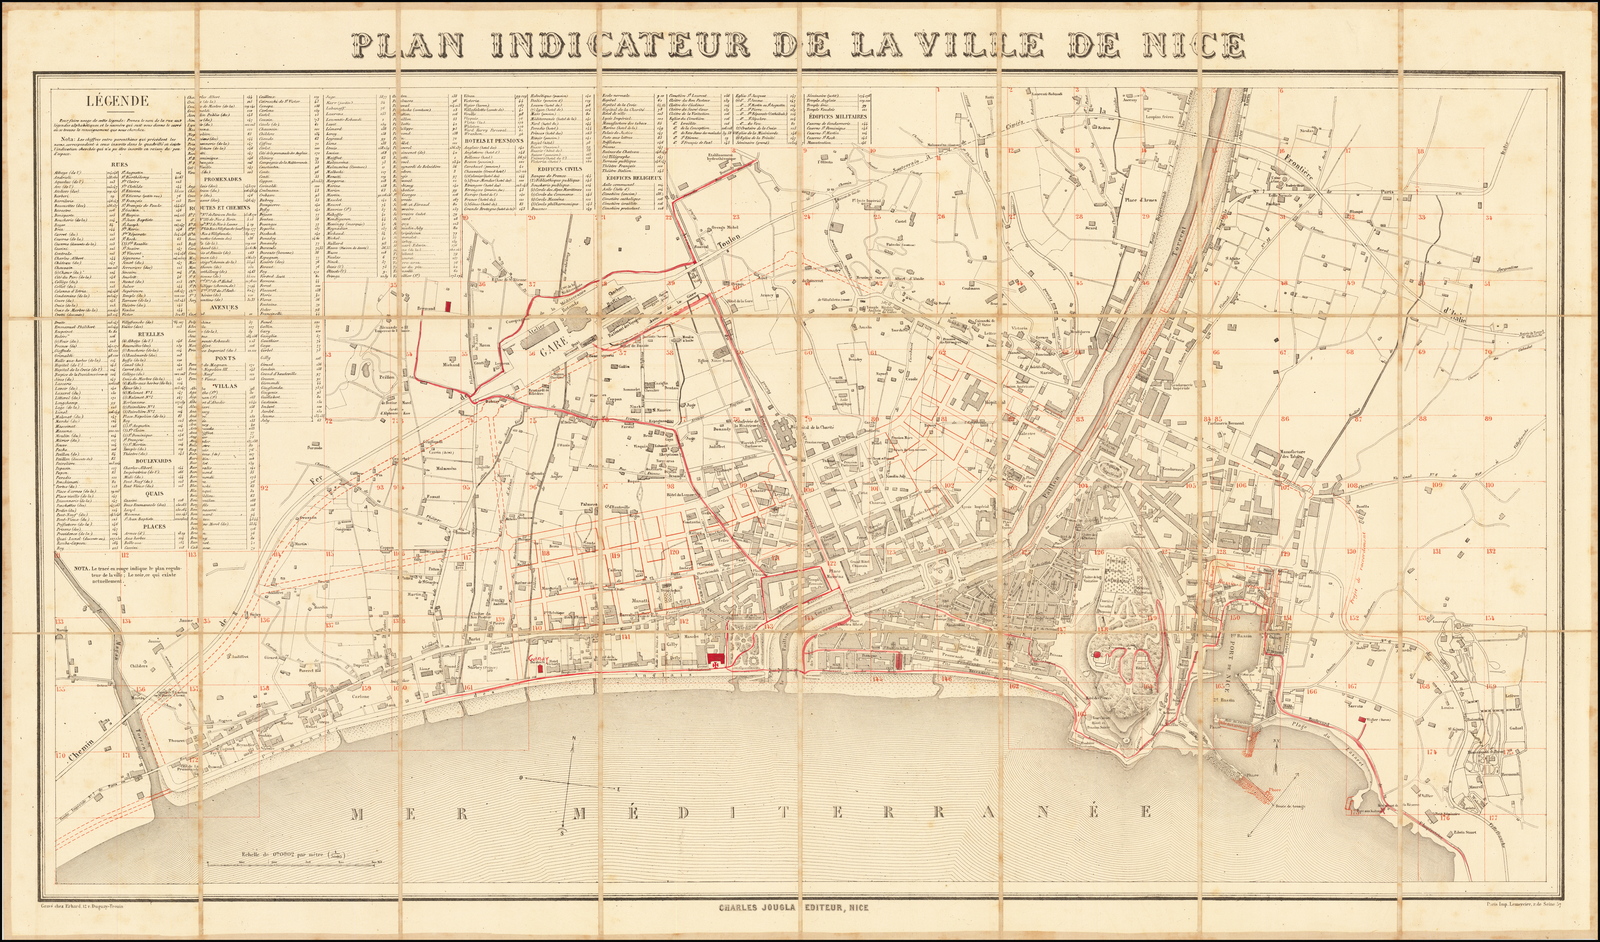 Plan Indicateur De La Ville De Nice Barry Lawrence Ruderman Antique Maps Inc